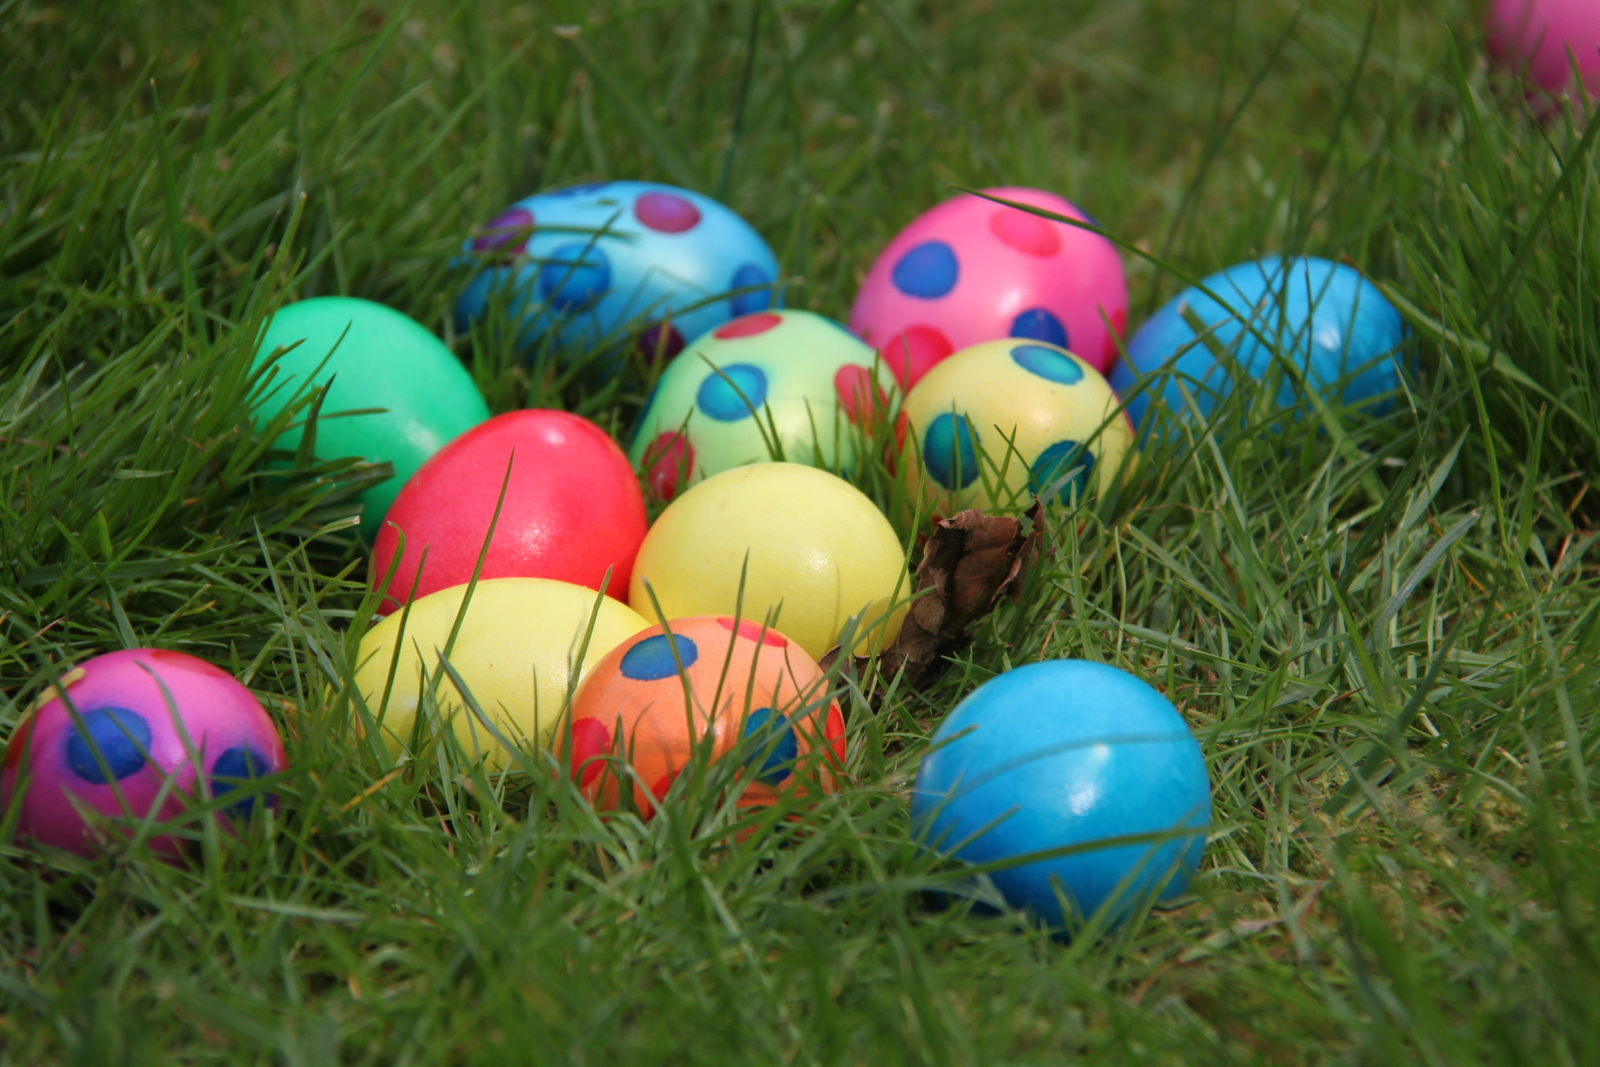 The Great Prescott Easter Egg Hunt 3/26 from 11 AM – 3 PM